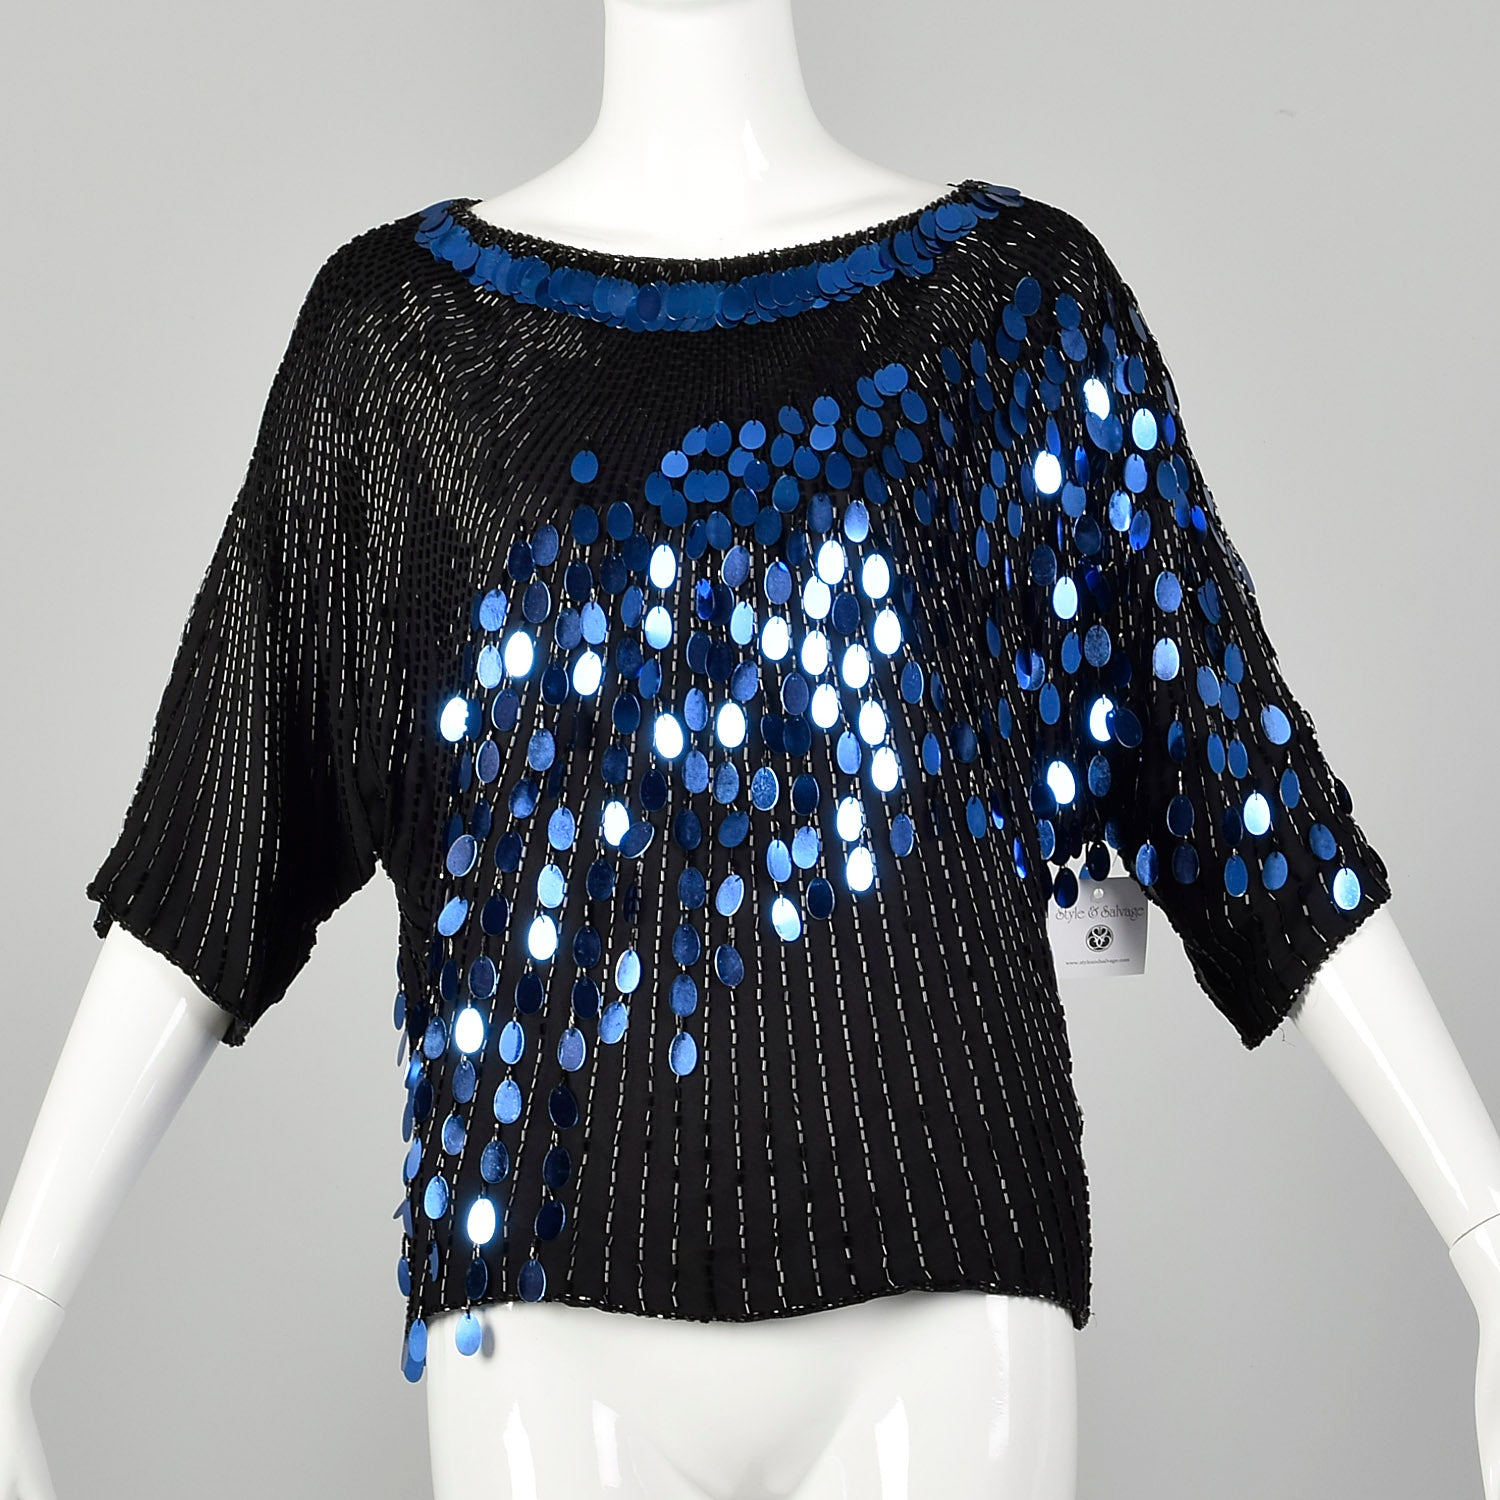 Medium 1980s Black and Blue Dolman Top Beaded Sequin Paillettes